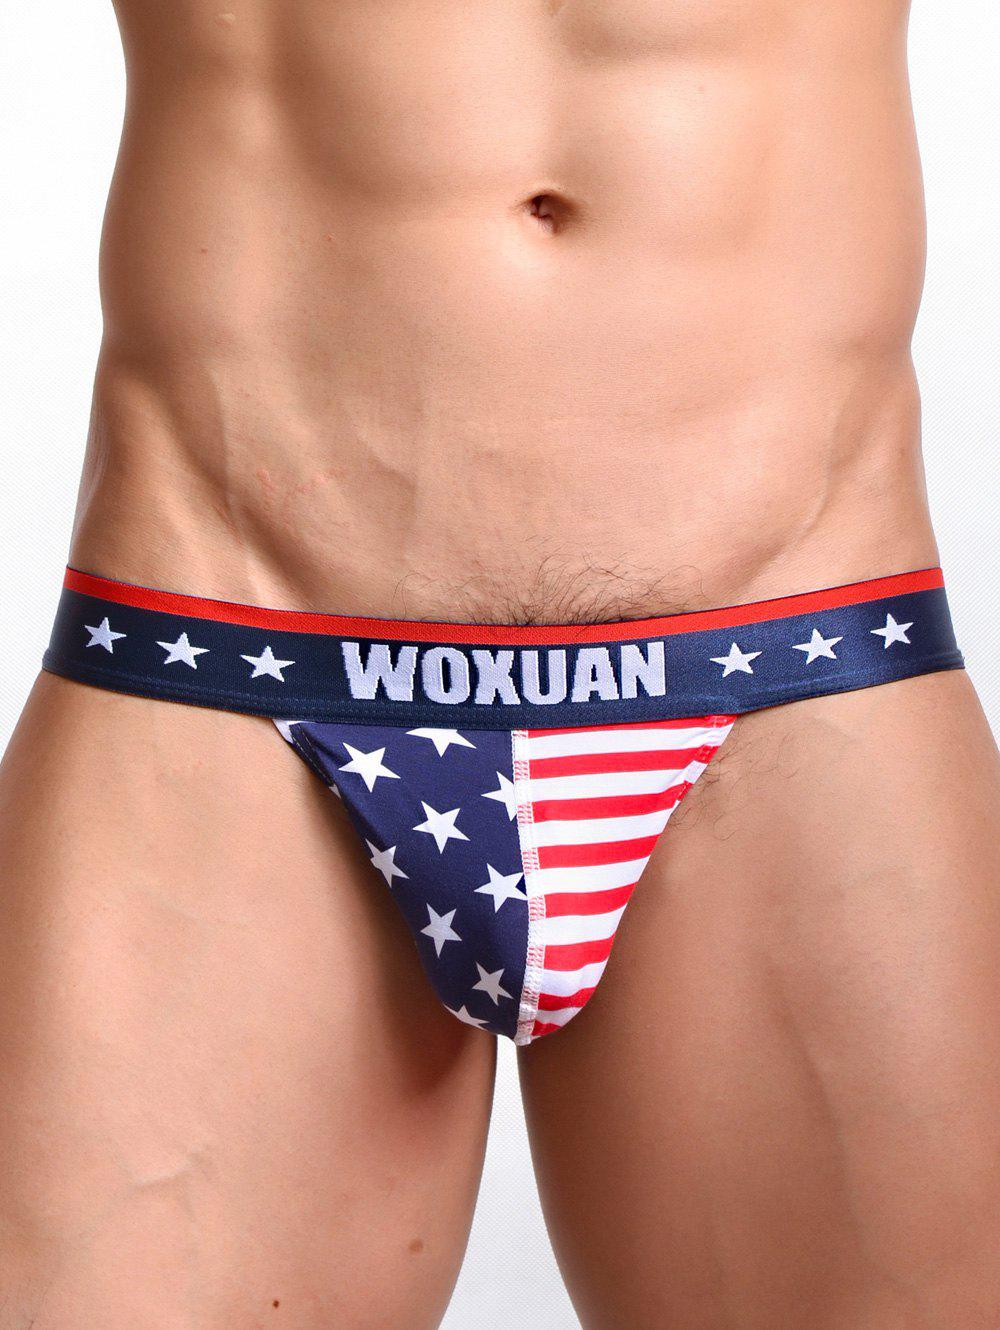 U Pouch Design Star and Stripe Bandage Men's Briefs - RED XL